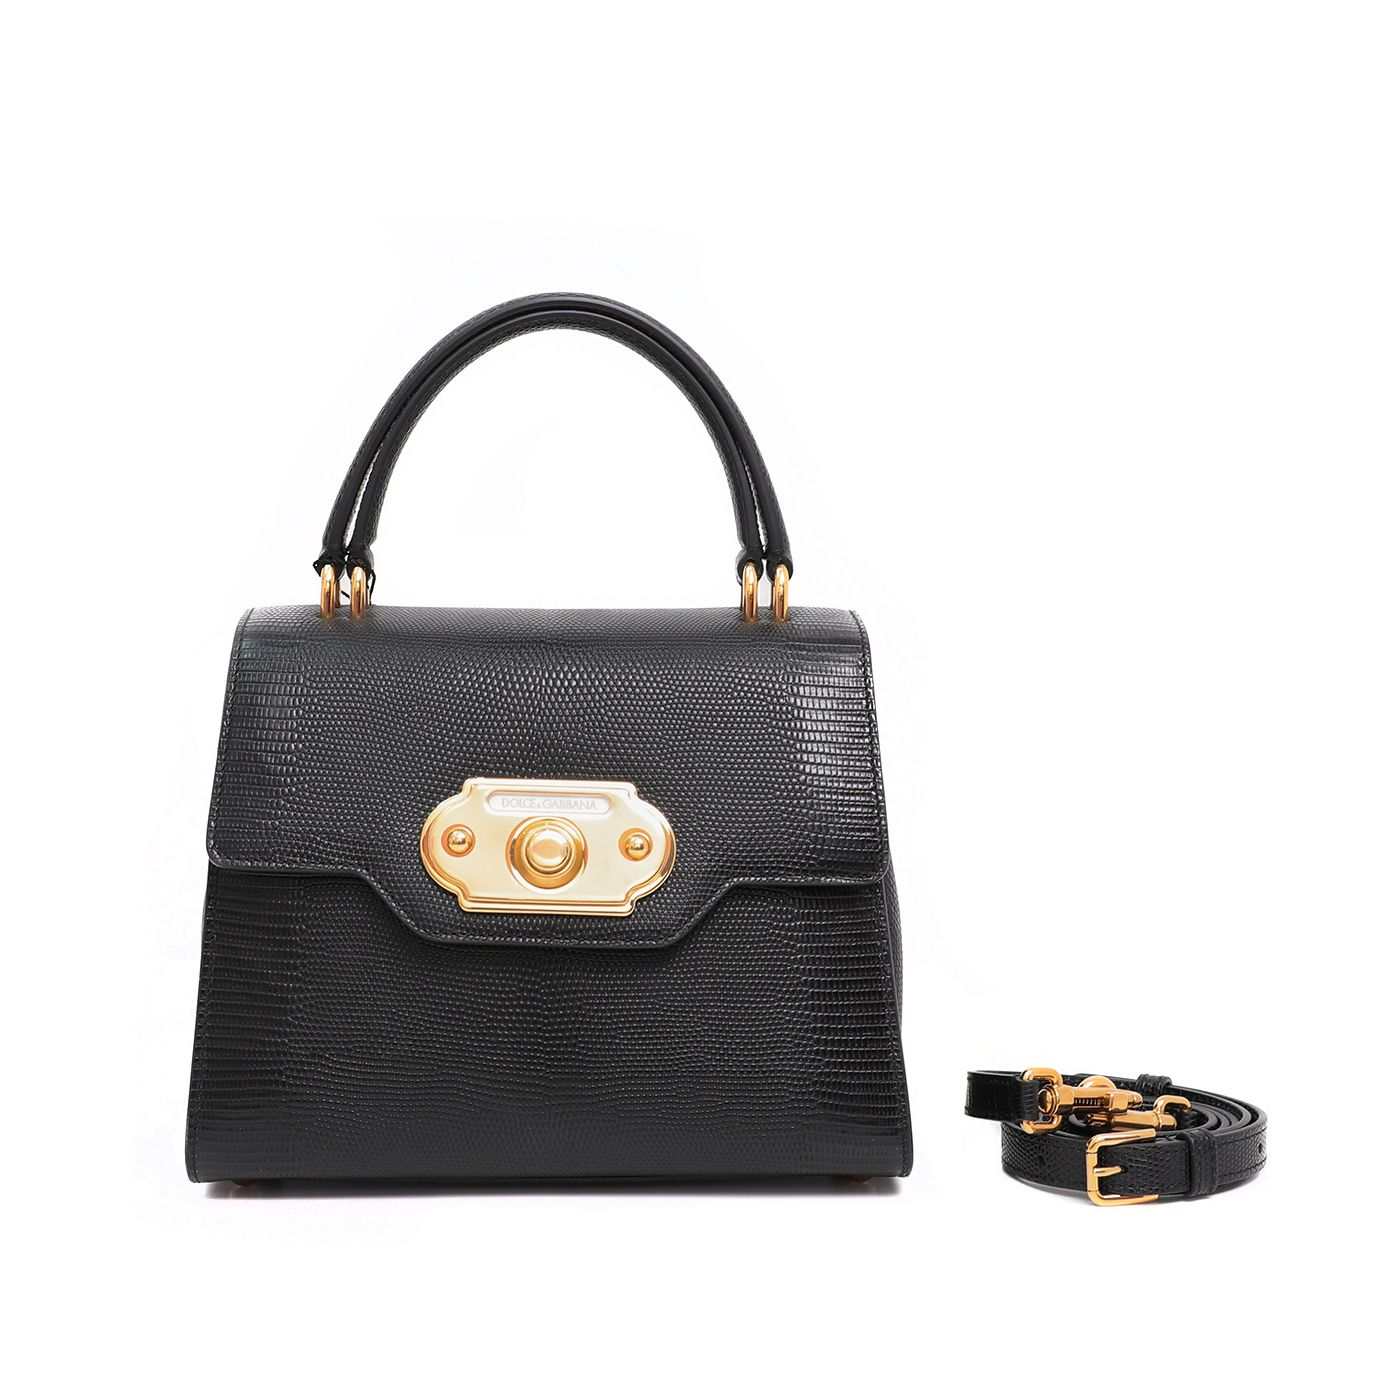 Dolce & Gabbana Black Welcome Small